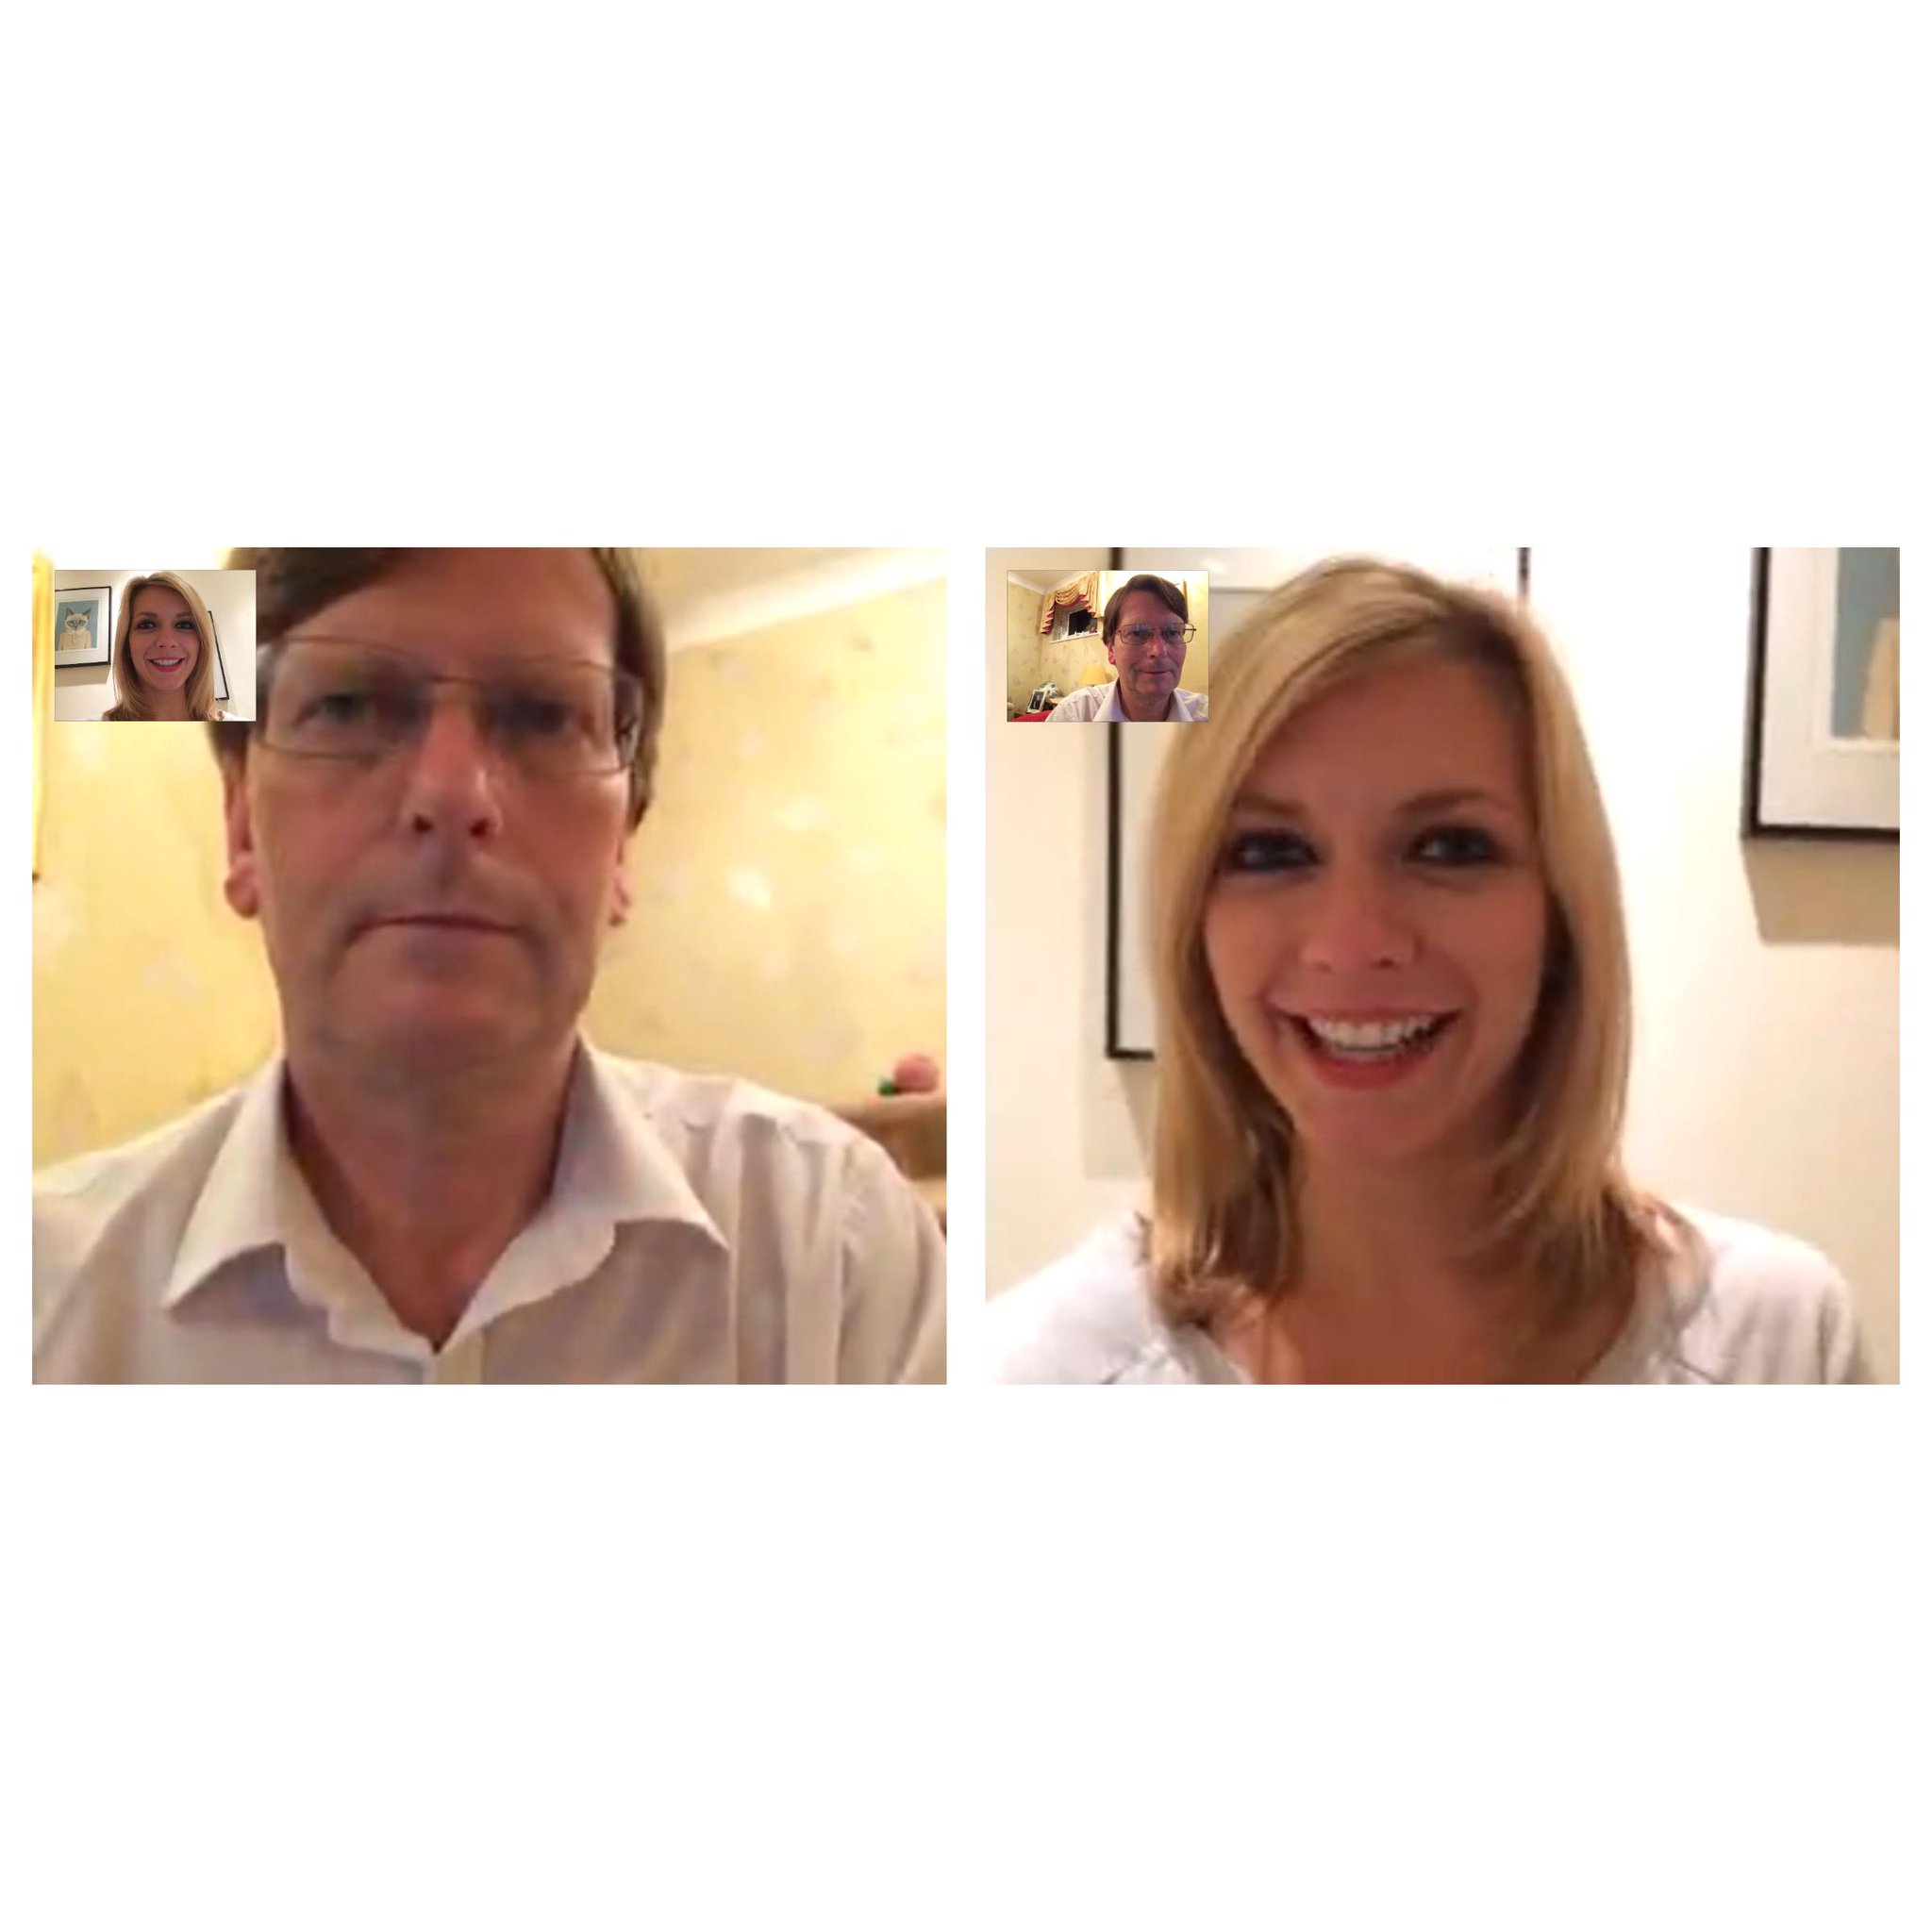 RT @RachelRileyRR: I'm working with EE & teaching my old man video calling for #TechyTeaParty Day, we've both learnt a lot!! http://t.co/ep…